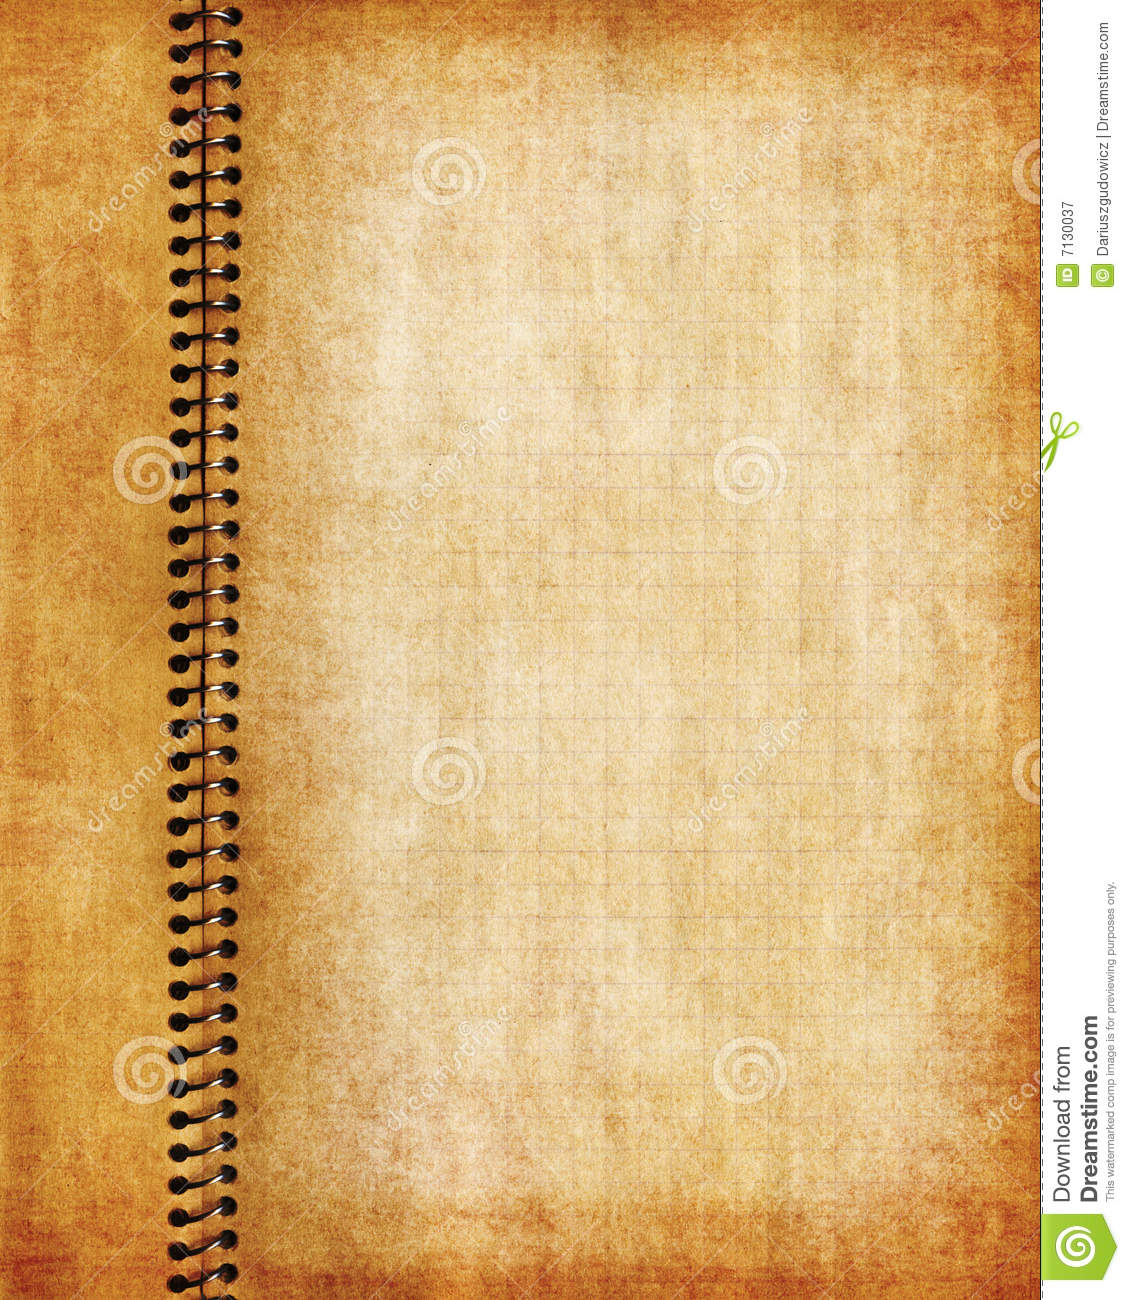 Page: Old Grunge Notebook Page Stock Illustration. Illustration